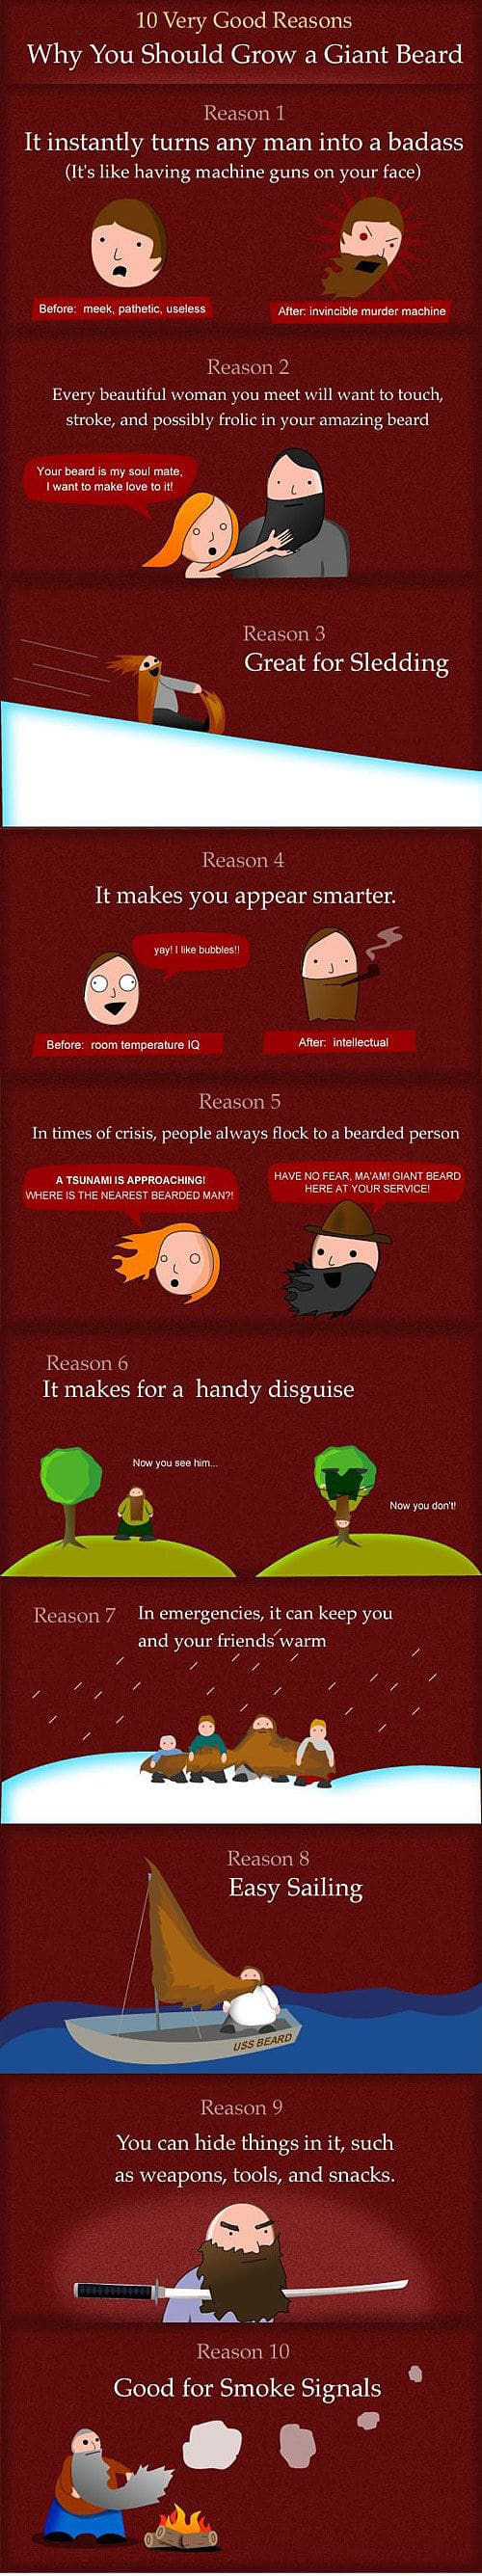 10 Good Reasons Why You Should Grow A Giant Beard [Infographic]